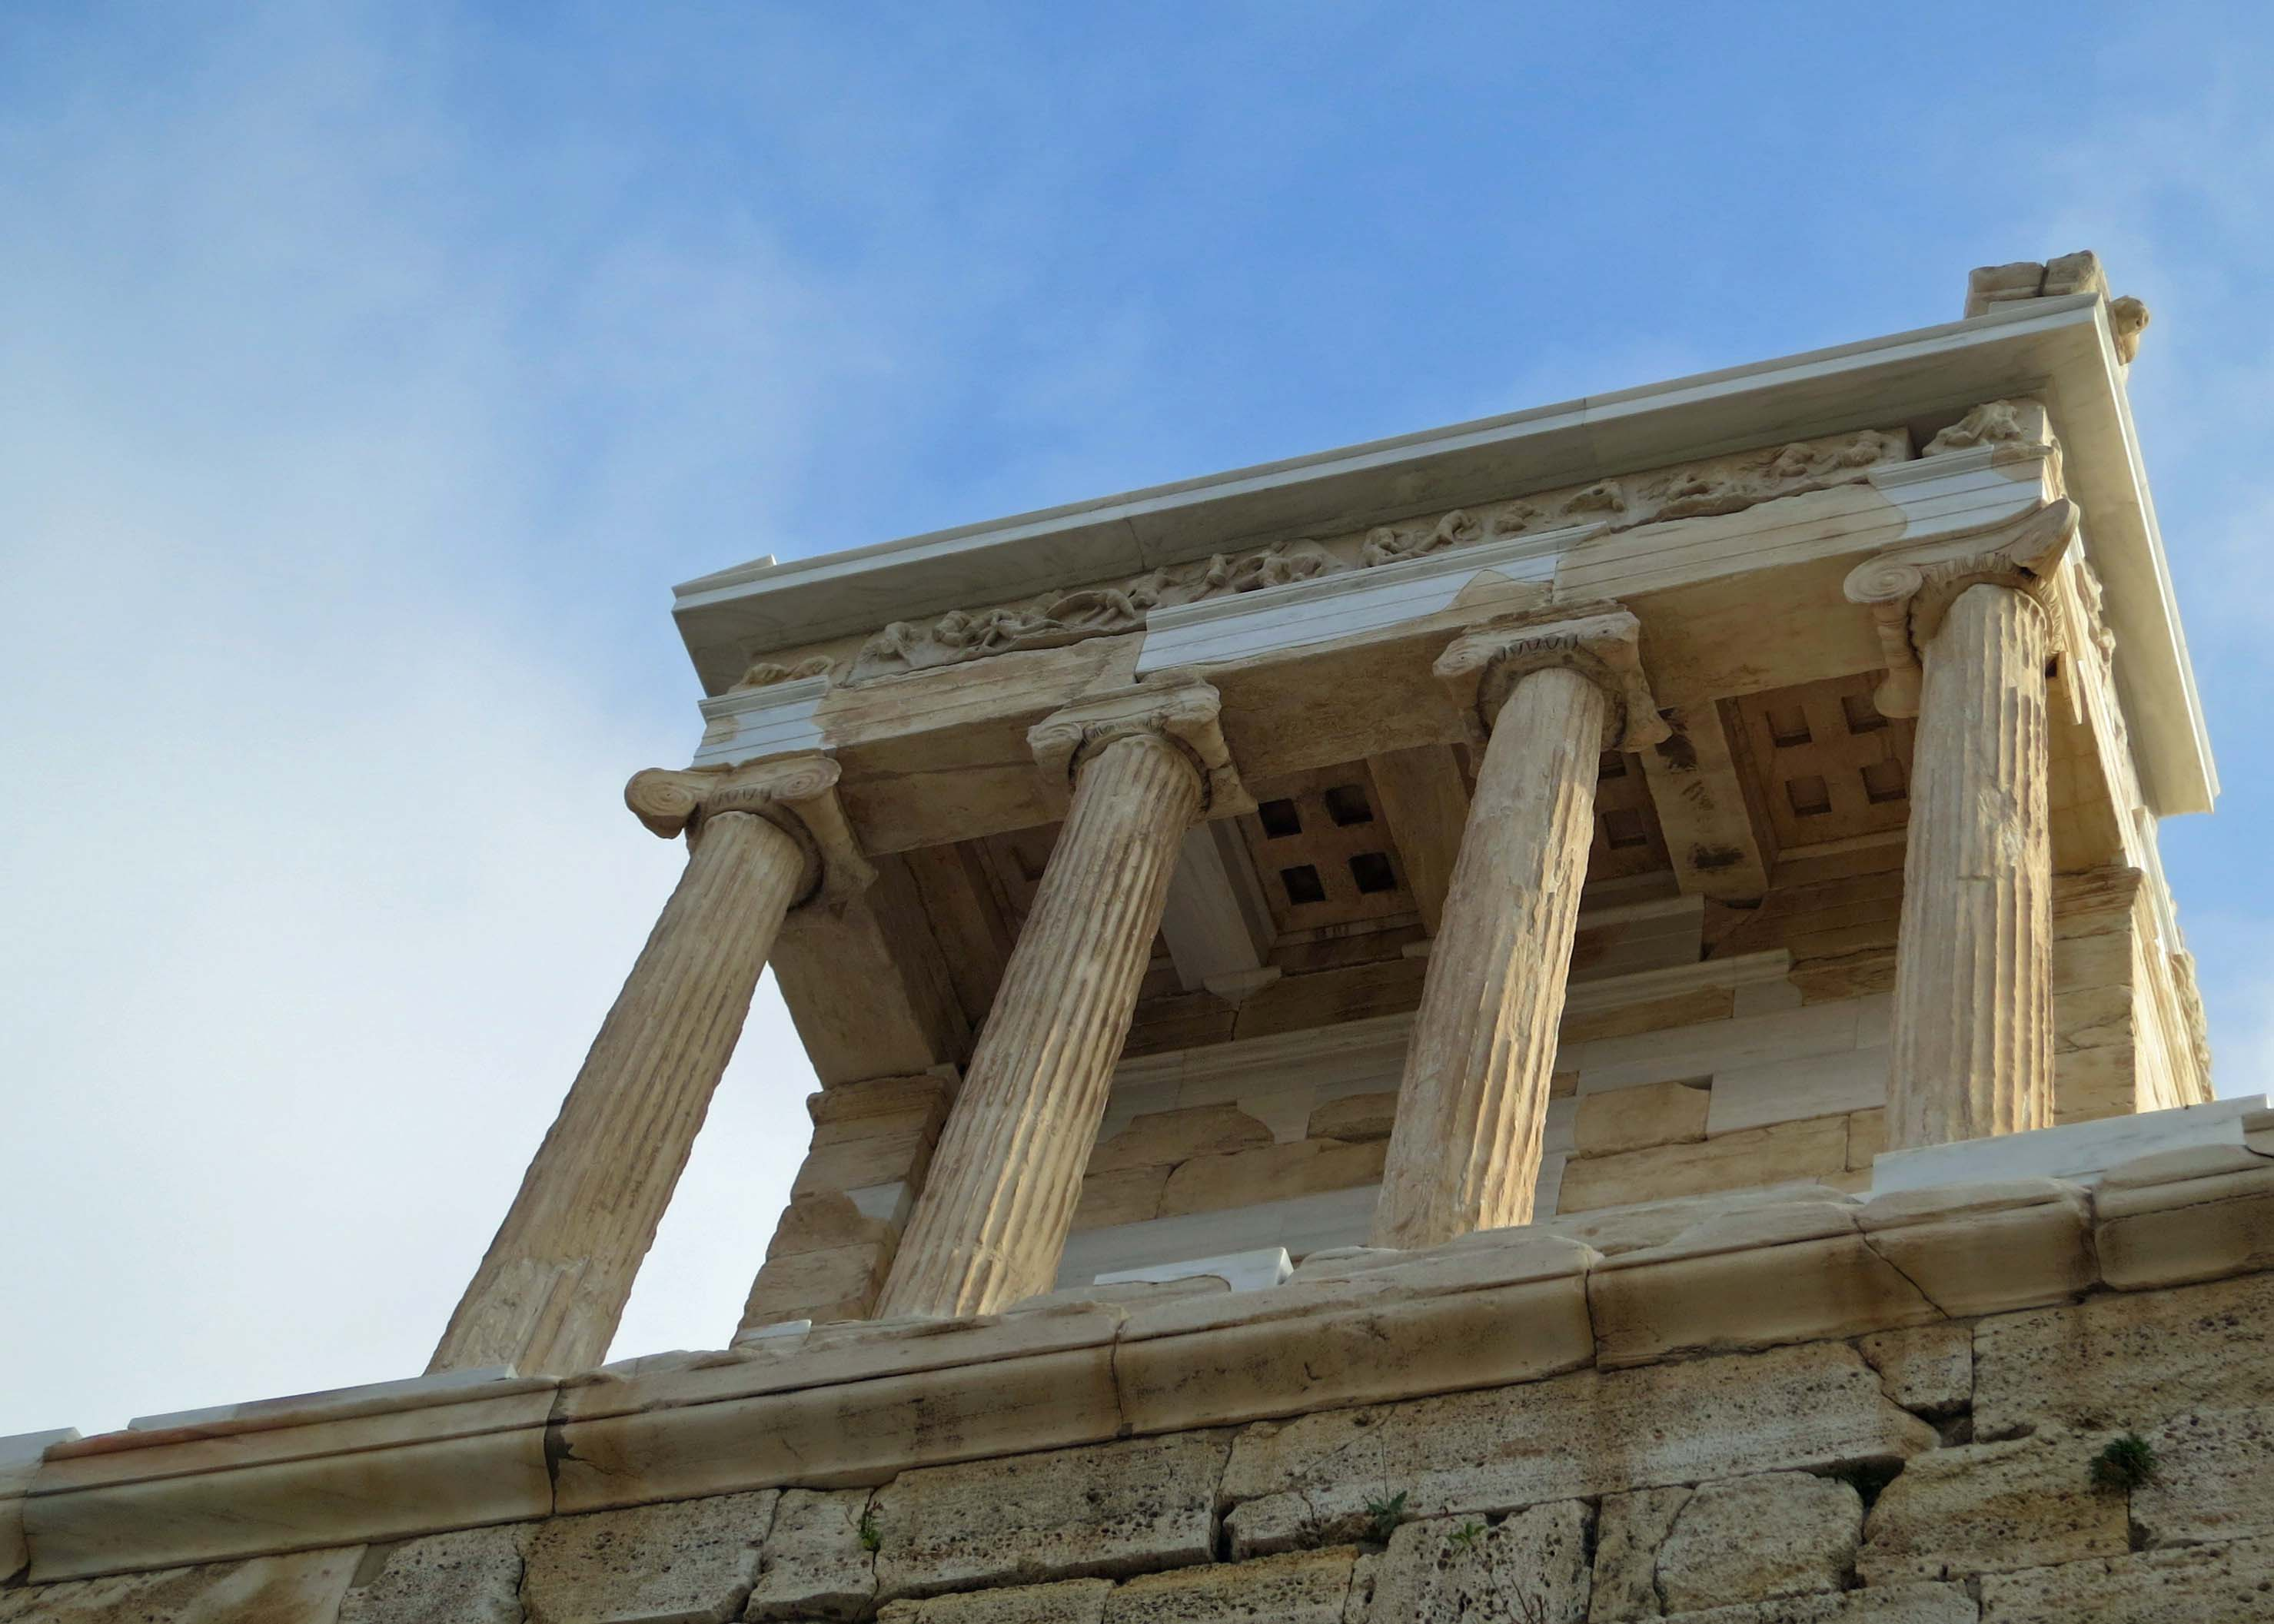 Looking upward at the Temple of Nike on the Acropolis.